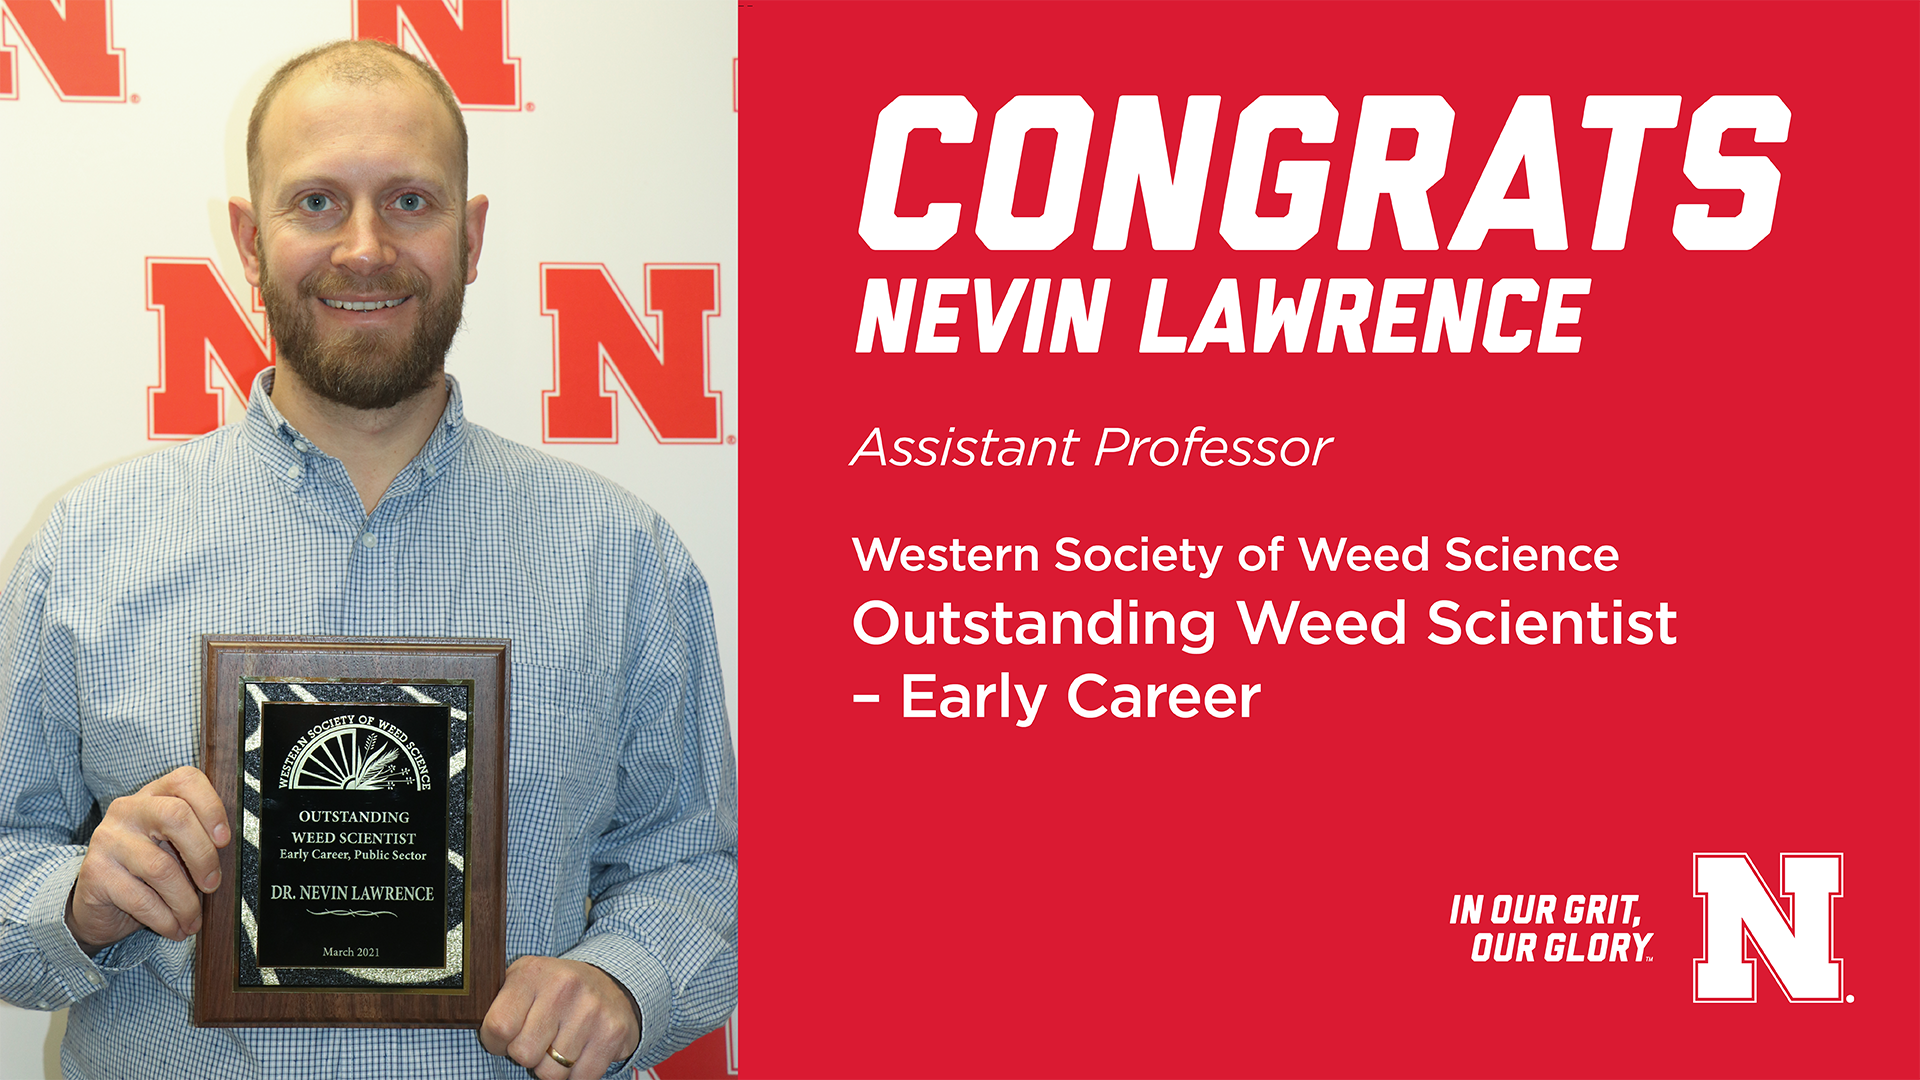 Nevin Lawrence recognized by the Western Society of Weed Science as the Outstanding Weed Scientist – Early Career.